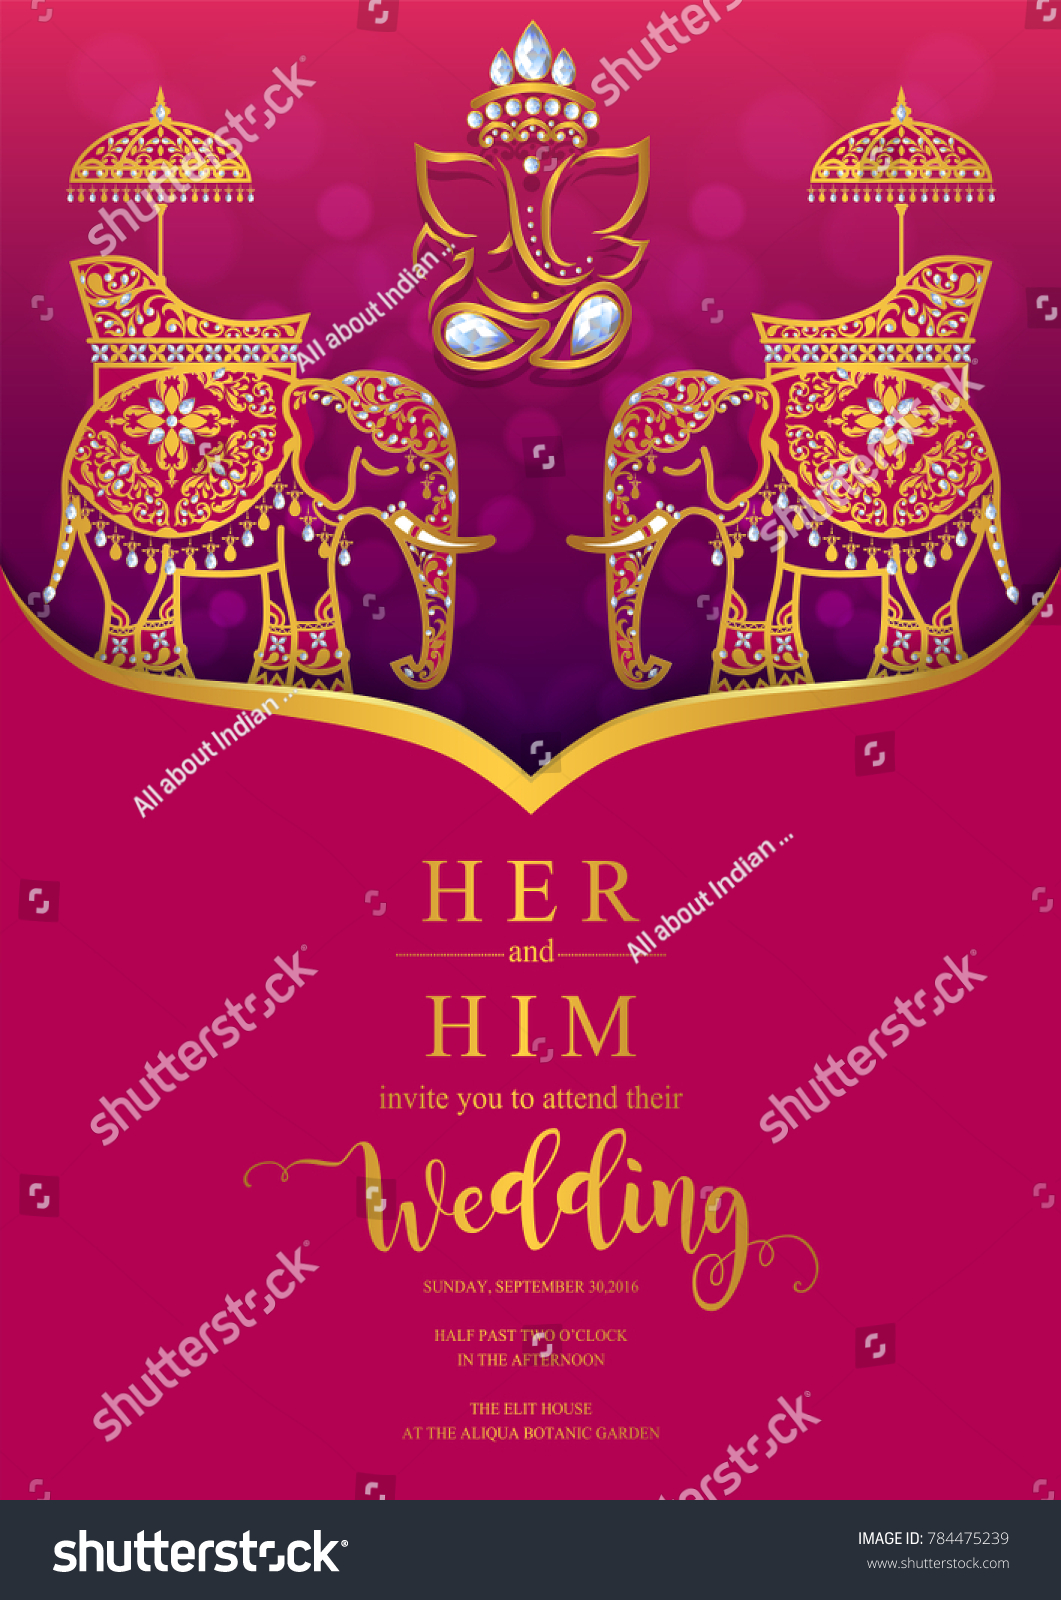 Indian Wedding Invitation Card Templates Gold Stock Vector (Royalty Free)  784475239